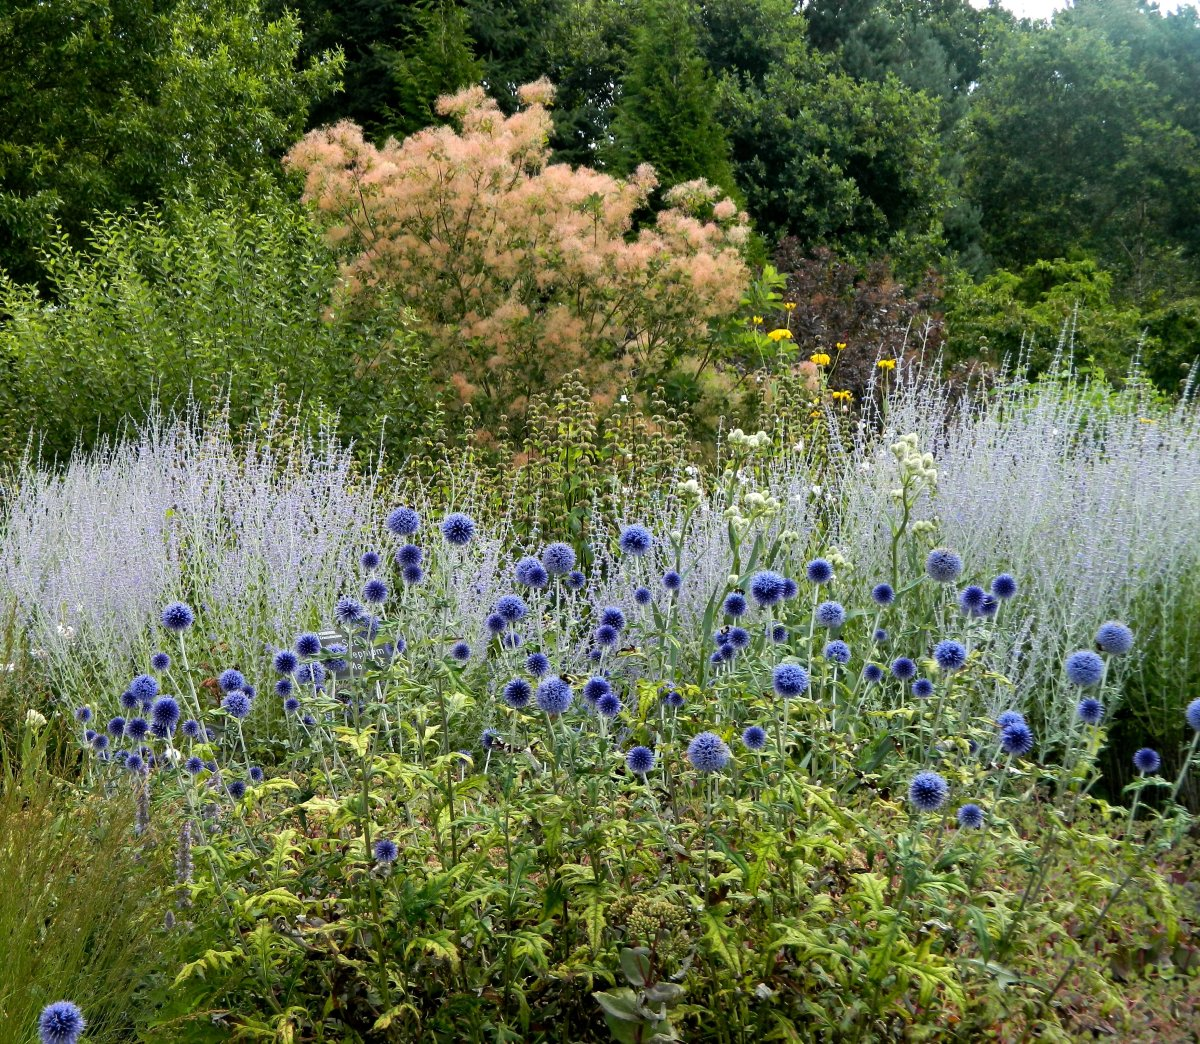 Echinops bannaticus, more commonly known as globe thistle, makes for a beautiful late-summer bloom in the garden.